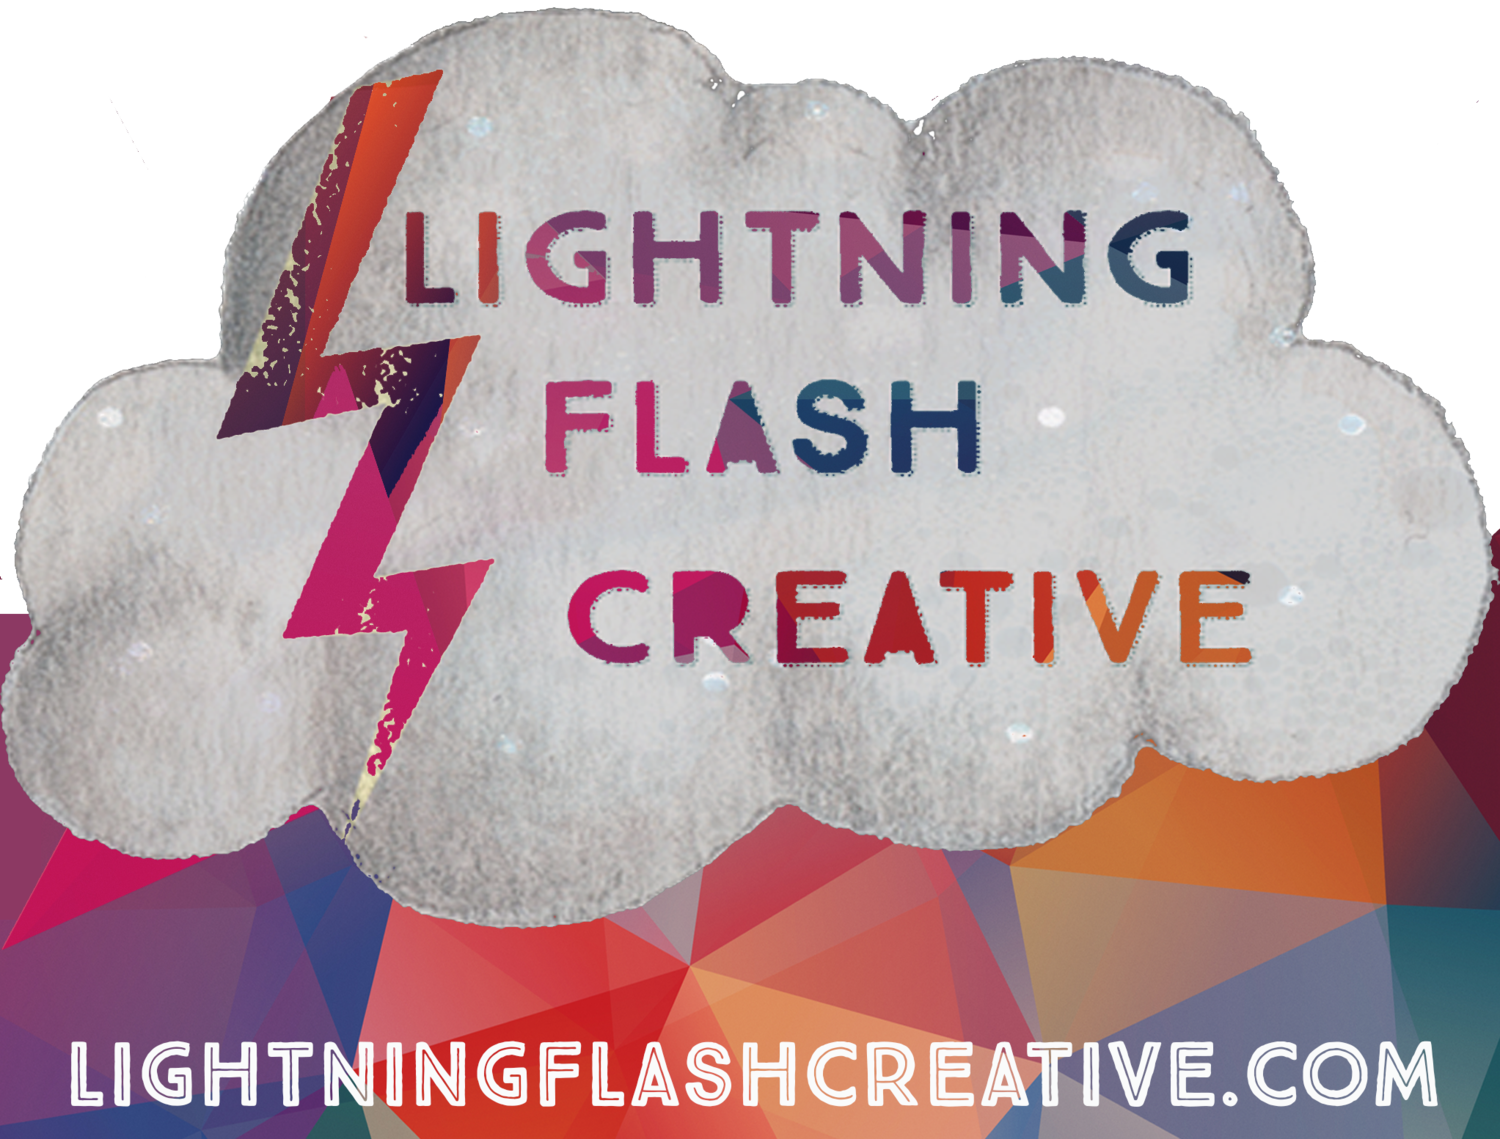 Lightning Flash Creative